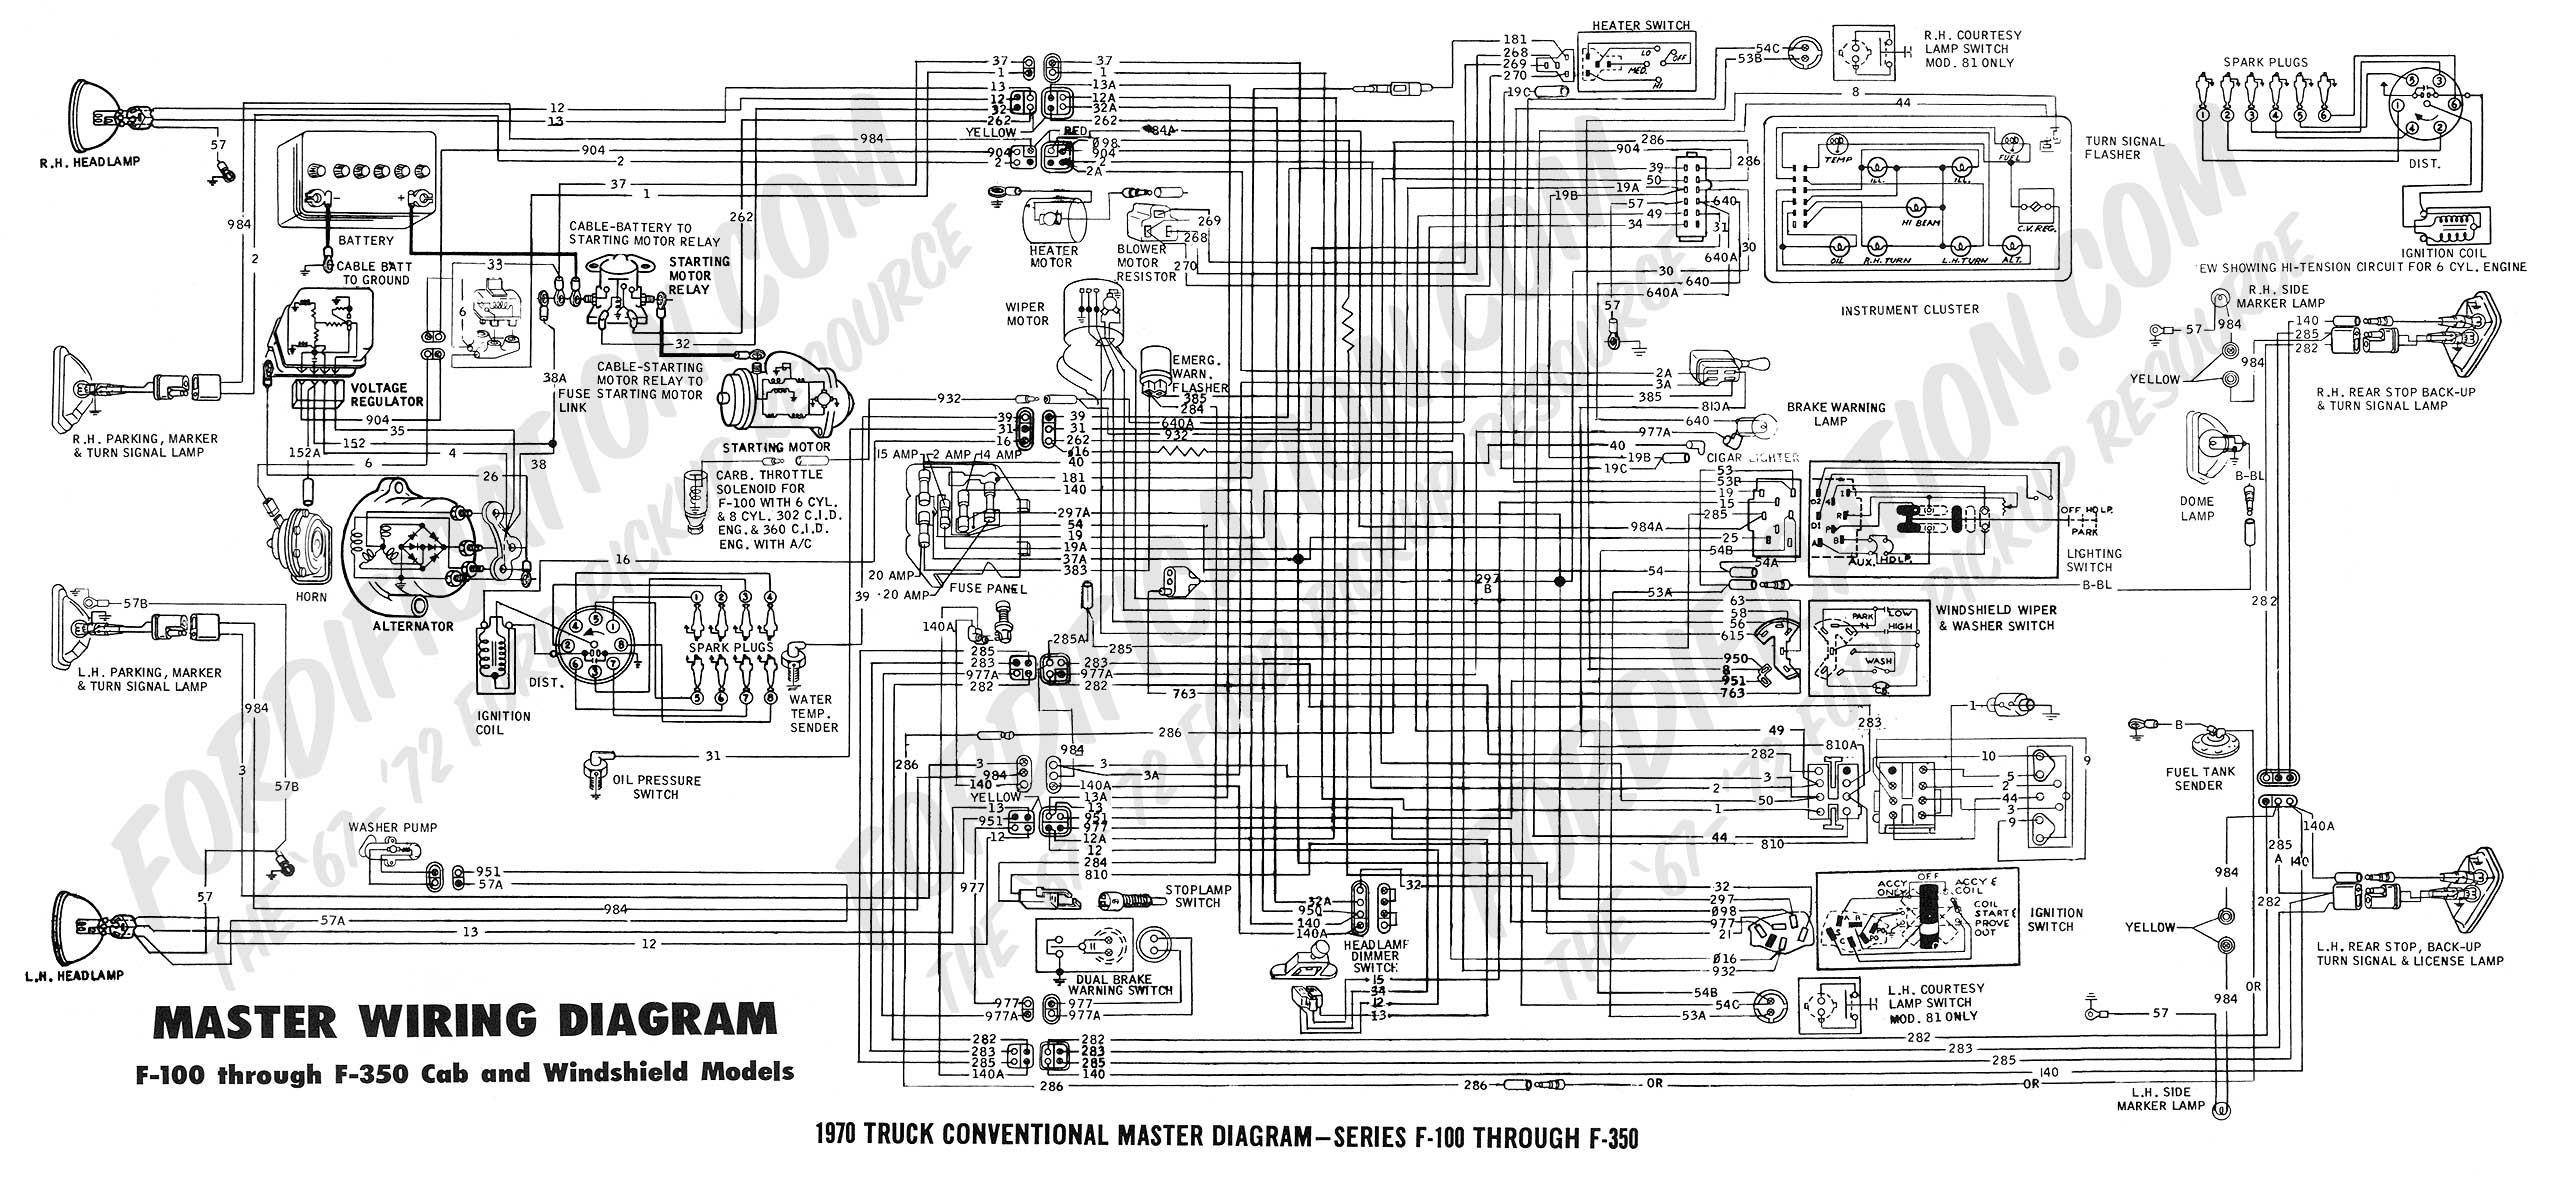 wiring diagram 70_master ford truck technical drawings and schematics section h wiring 1978 ford f250 wiring harness at bakdesigns.co